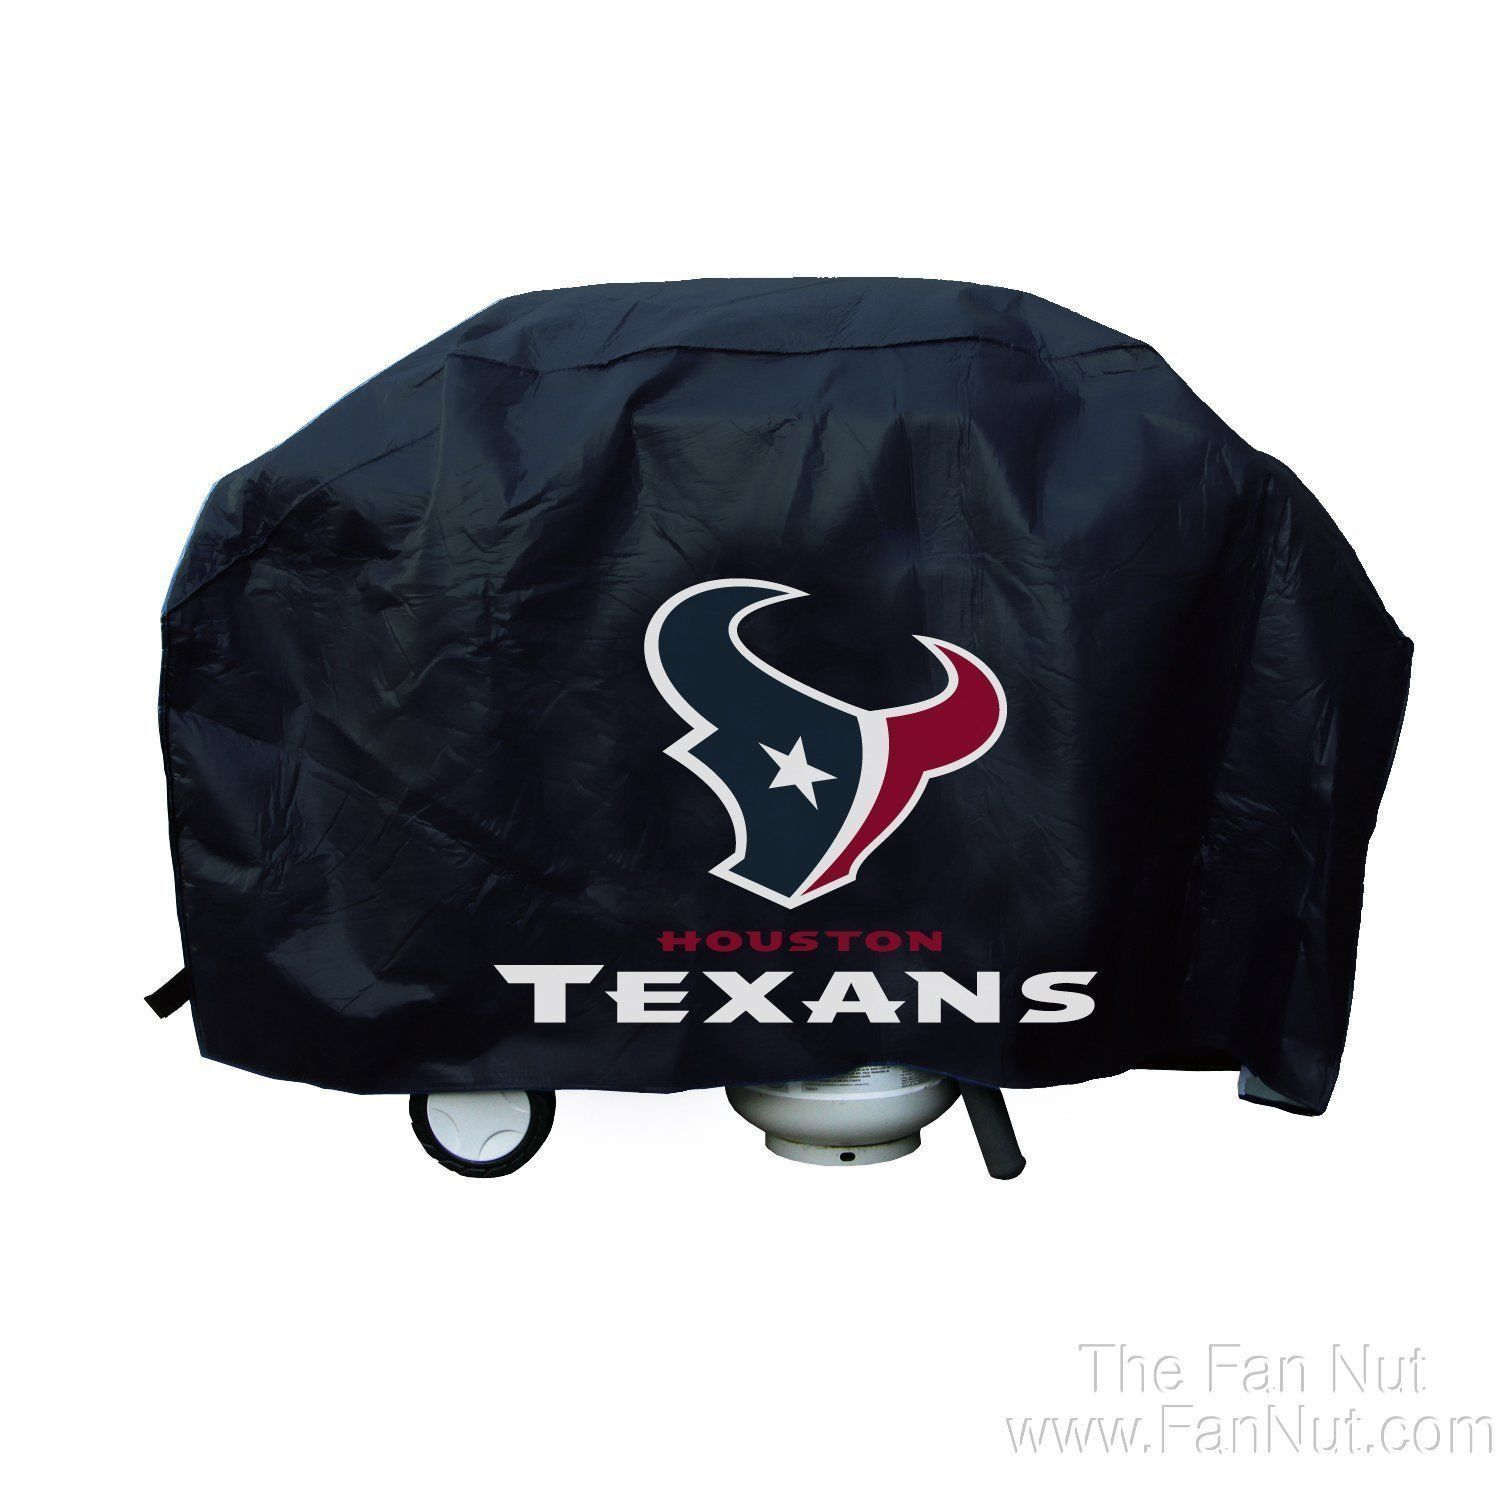 HOUSTON TEXANS ECONOMY BARBEQUE BBQ GRILL COVER NFL FOOTBALL